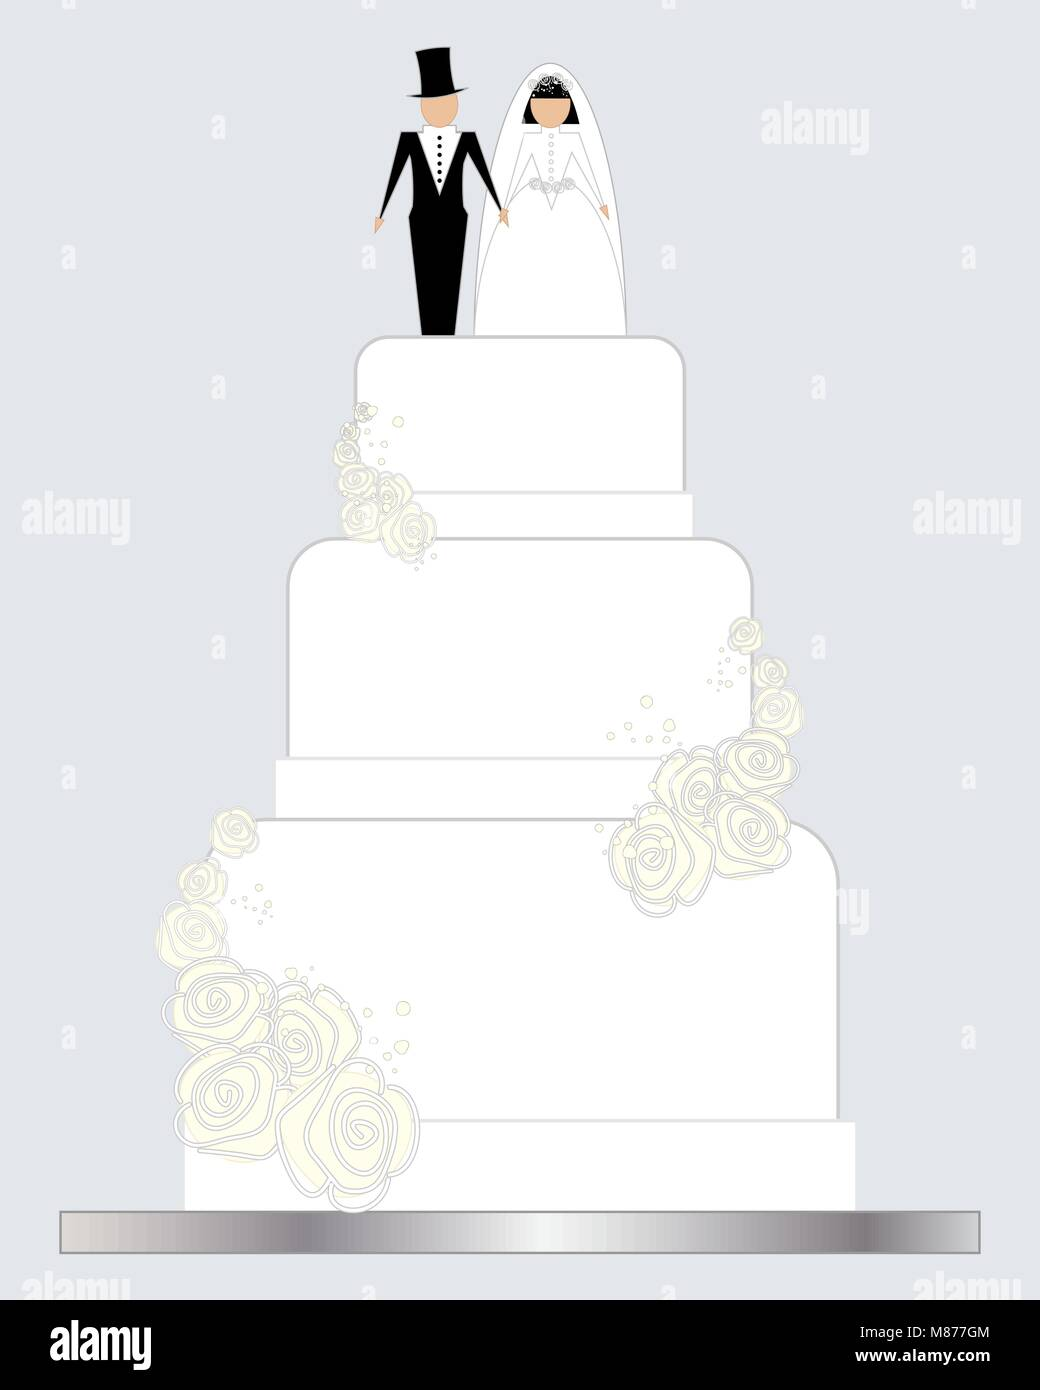 a vector illustration in eps 10 format of a white decorated wedding ...